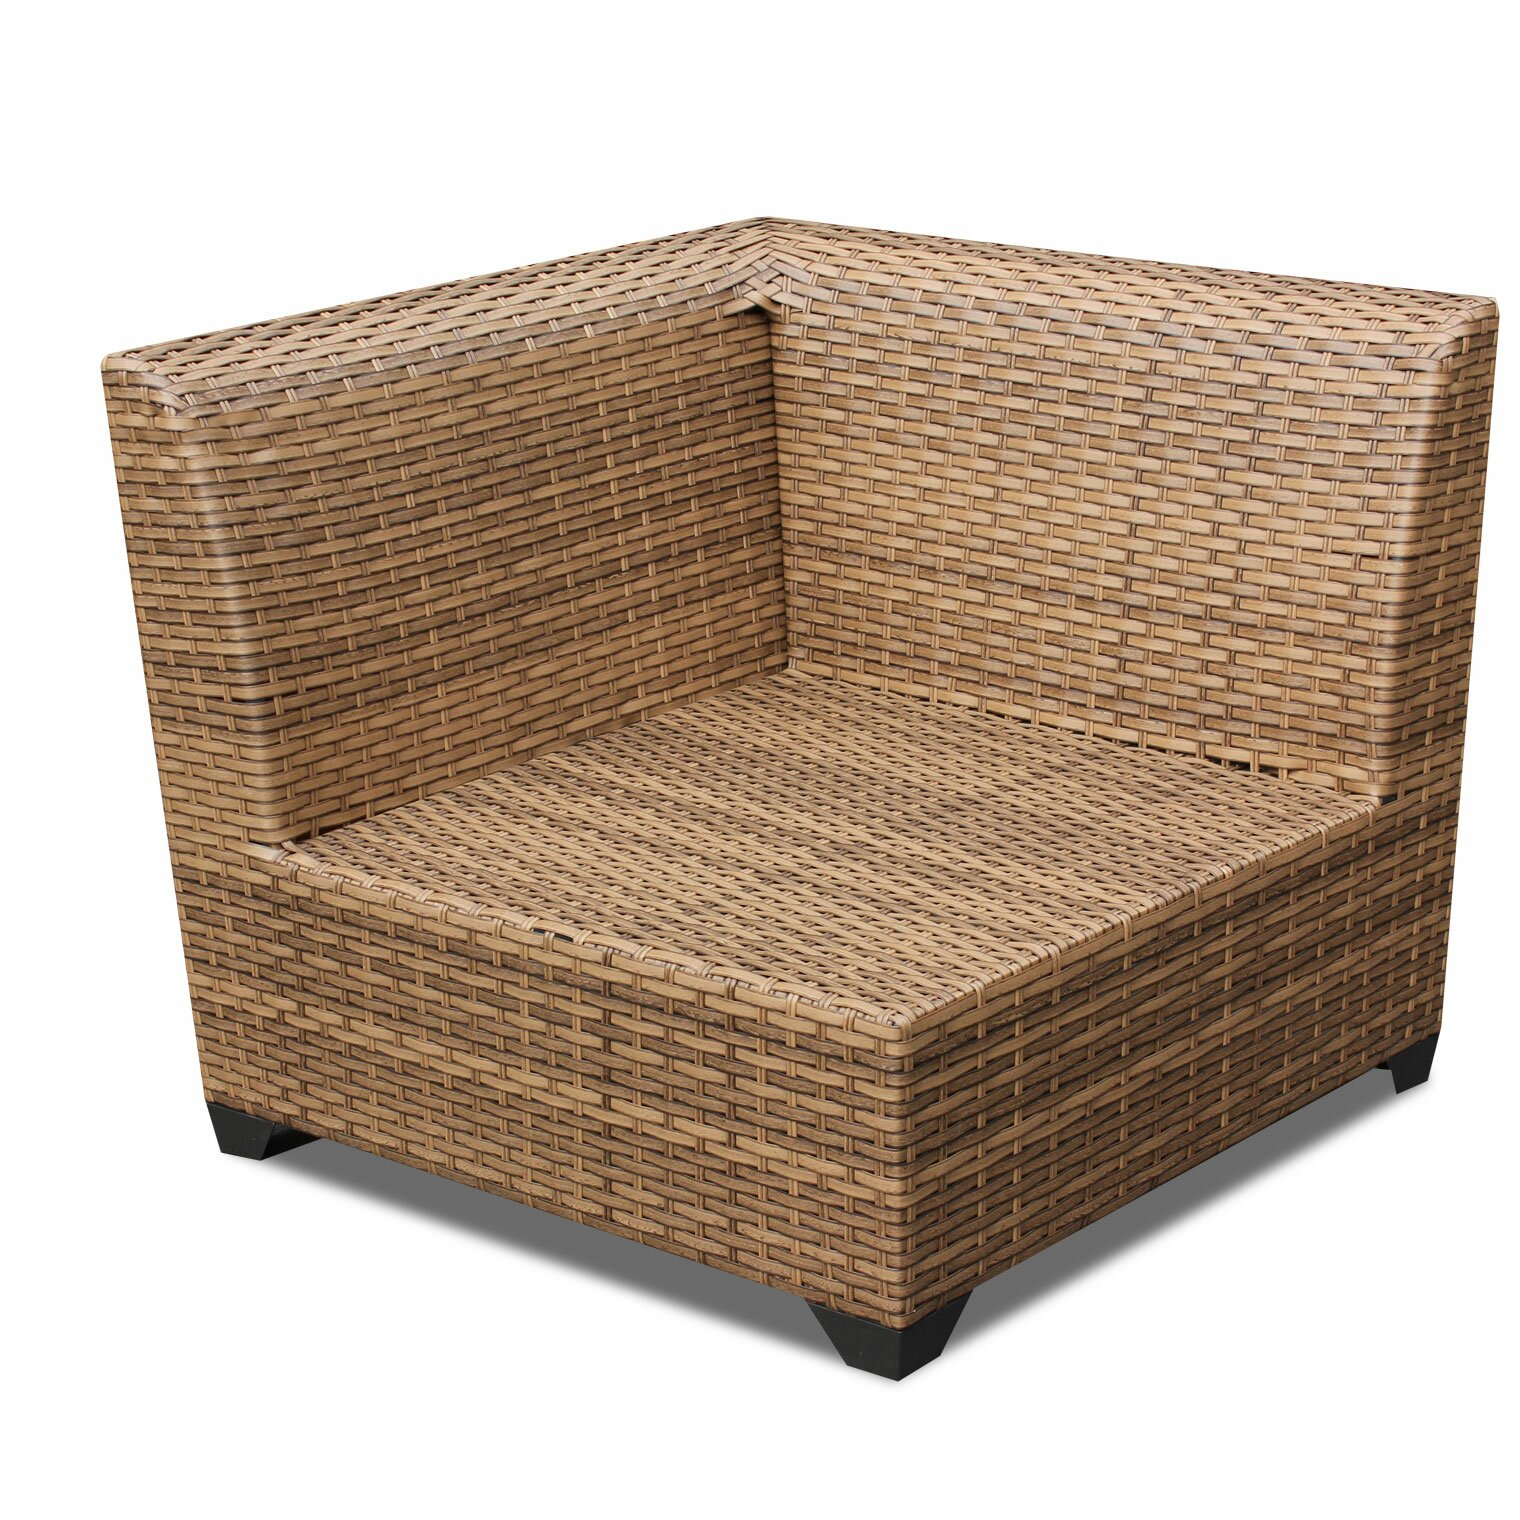 TK Classics Laguna Outdoor Wicker Patio 10 Piece Deep Seating Group With Cush